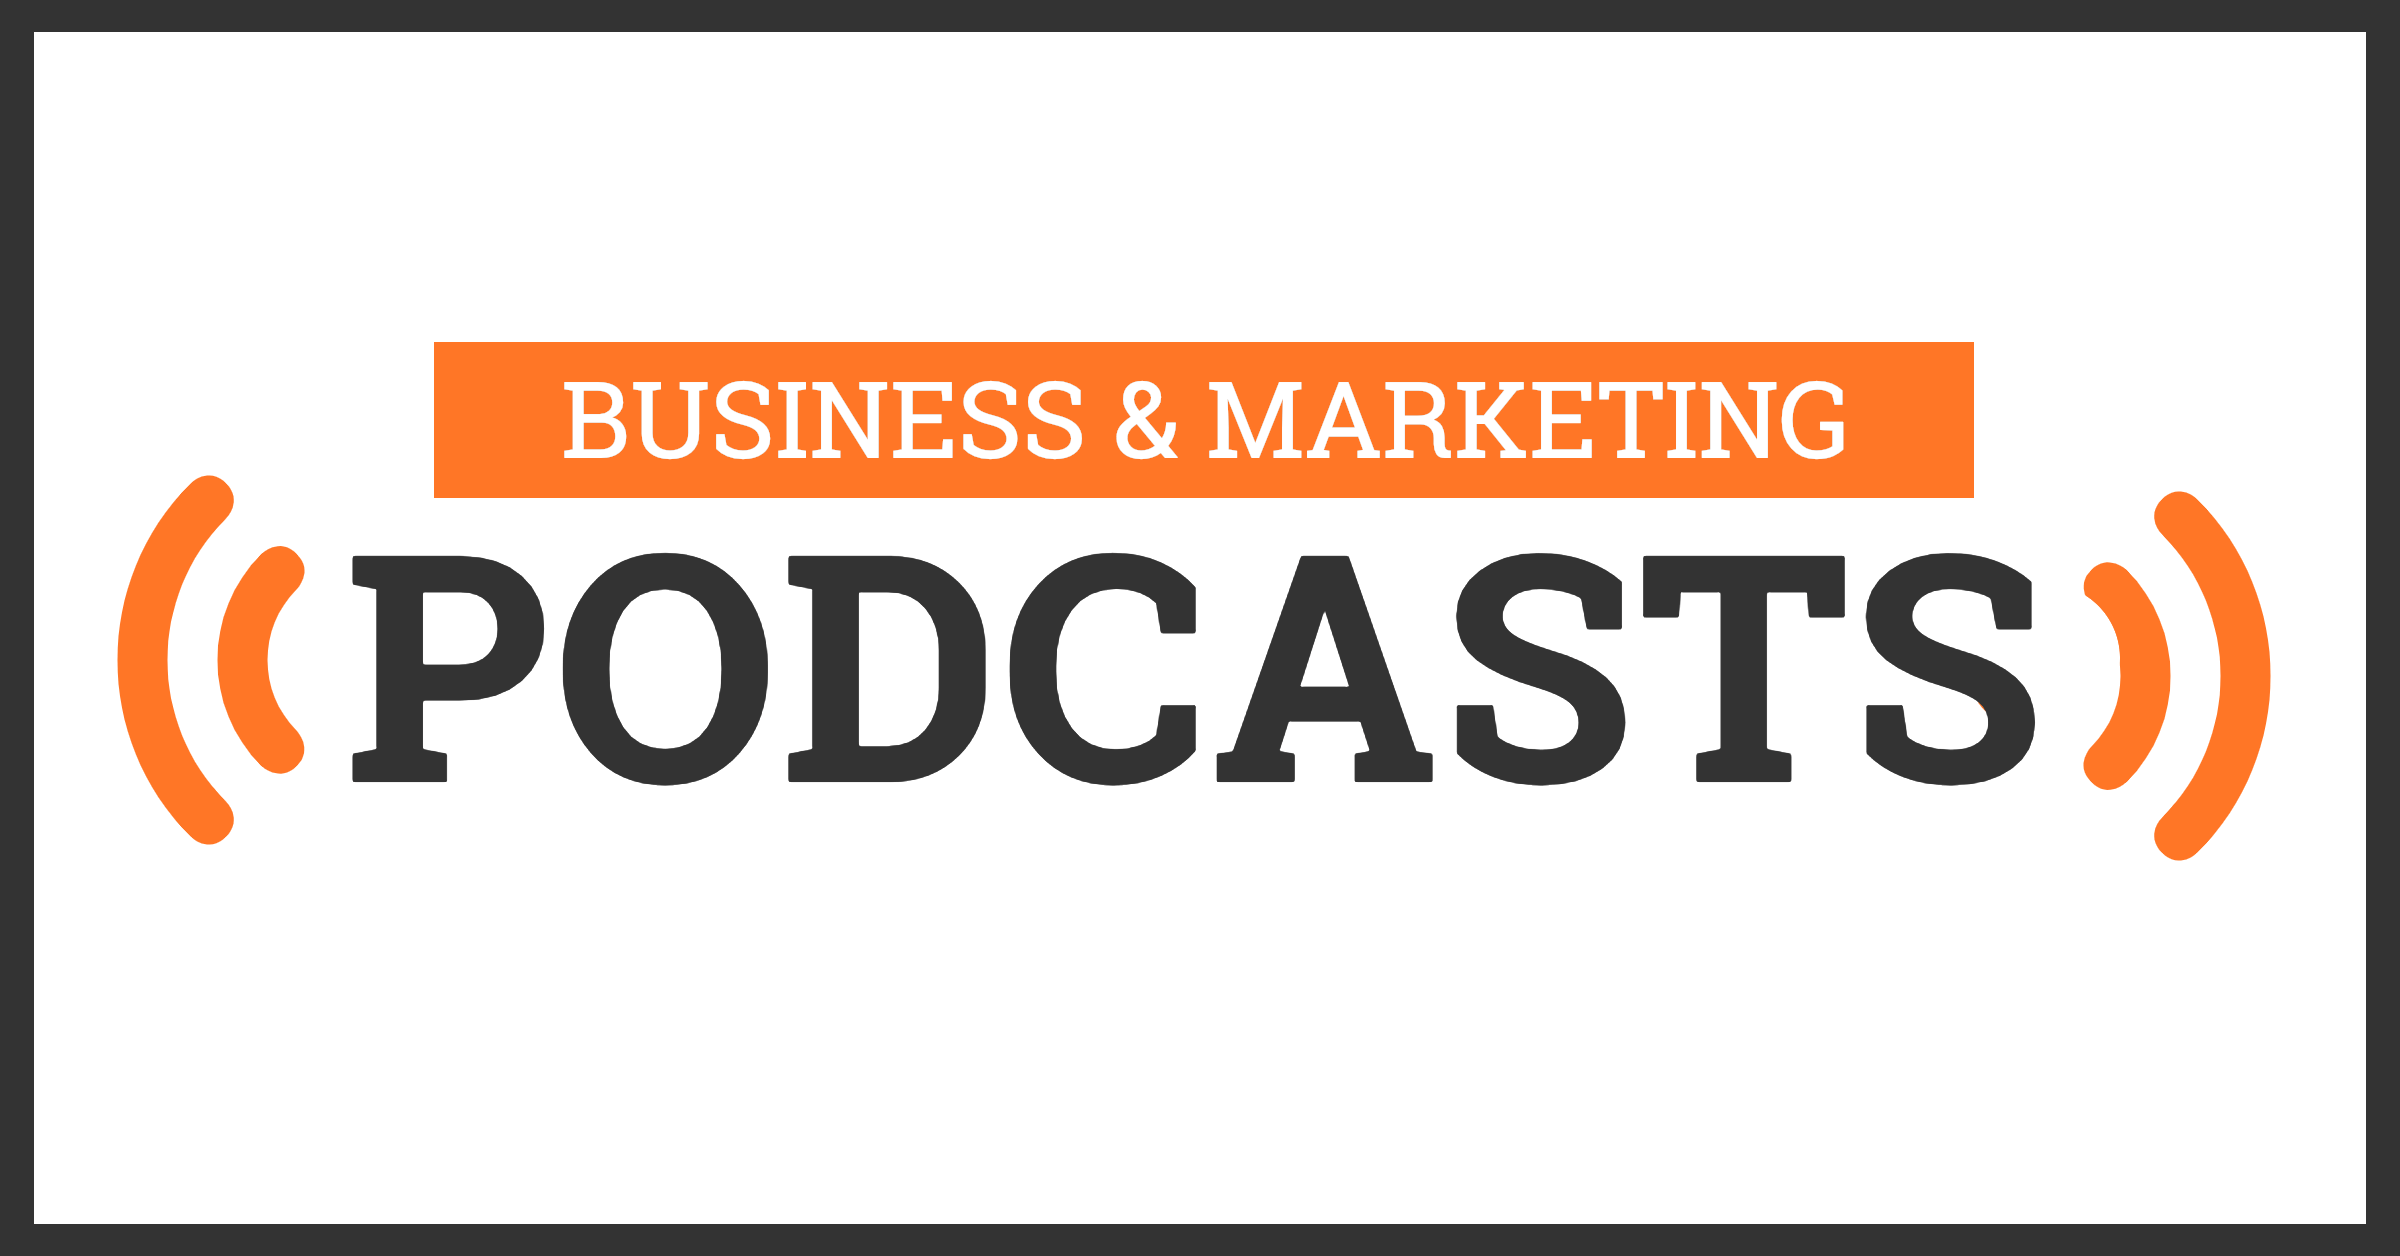 31 Business & Marketing Podcasts to Listen To in 2019